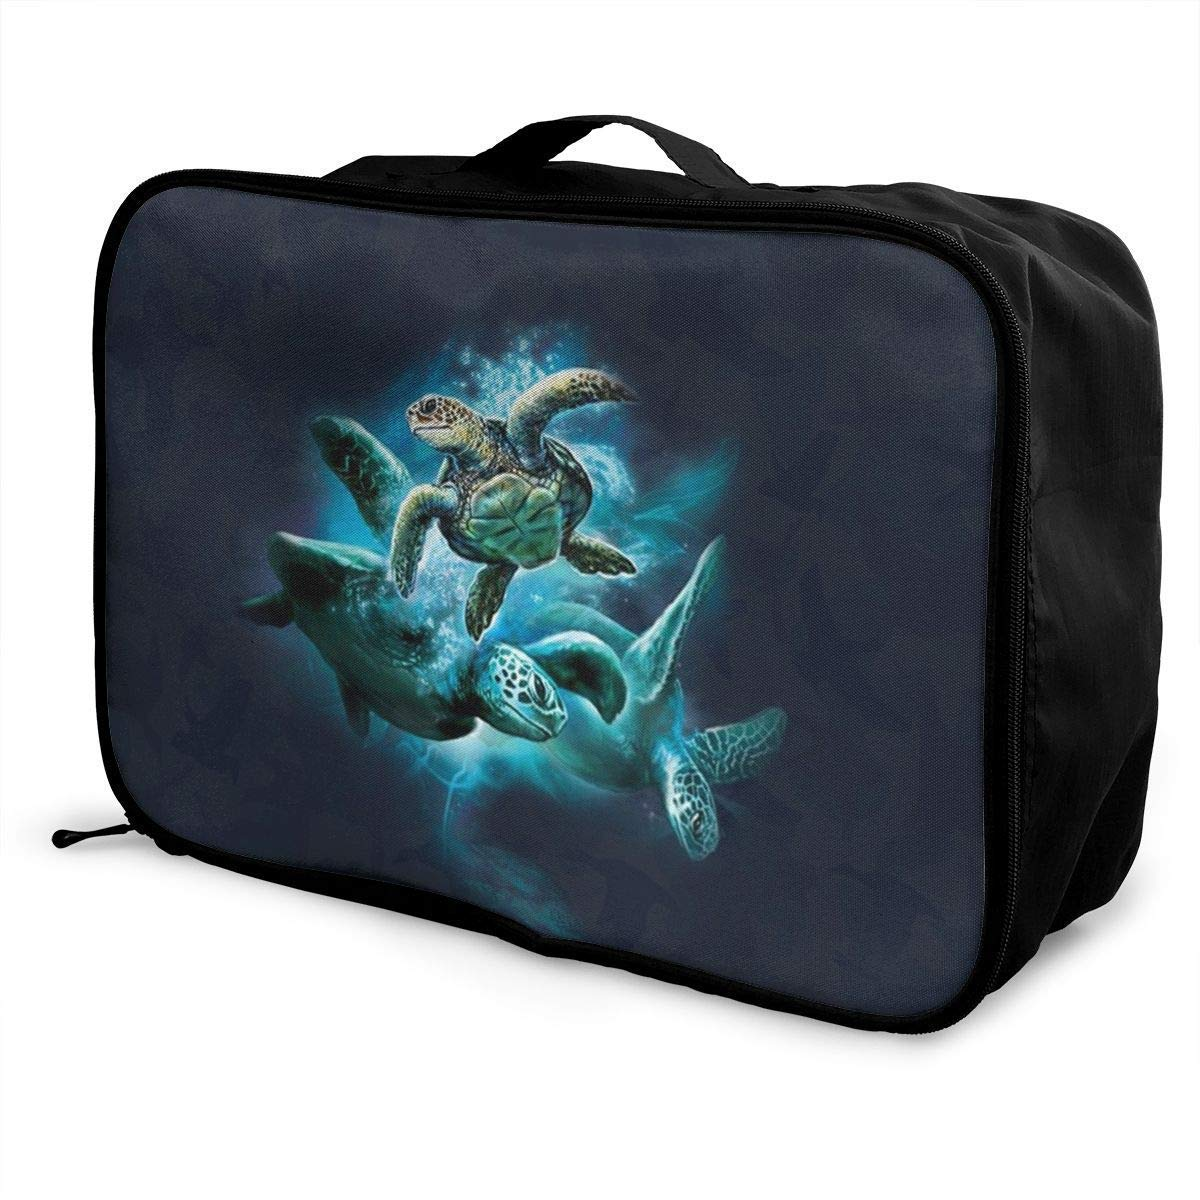 JTRVW Luggage Bags for Travel Portable Luggage Duffel Bag Sea Turtle Collage Travel Bags Carry-on in Trolley Handle